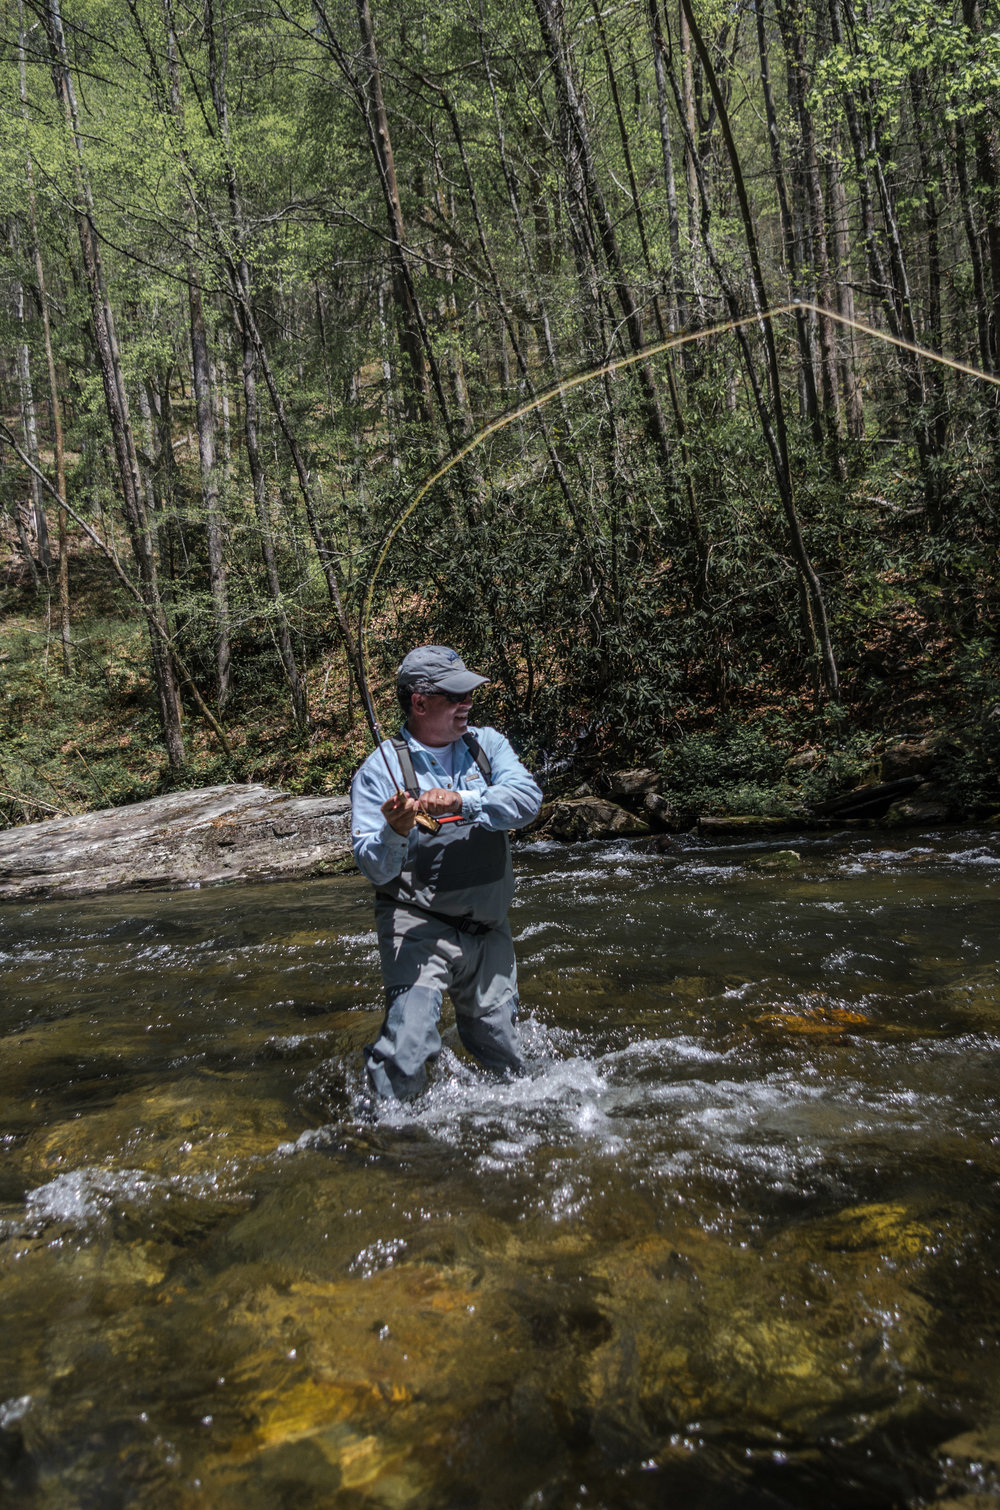 Fly Fisherman Fighting Fish Davidson River.jpg